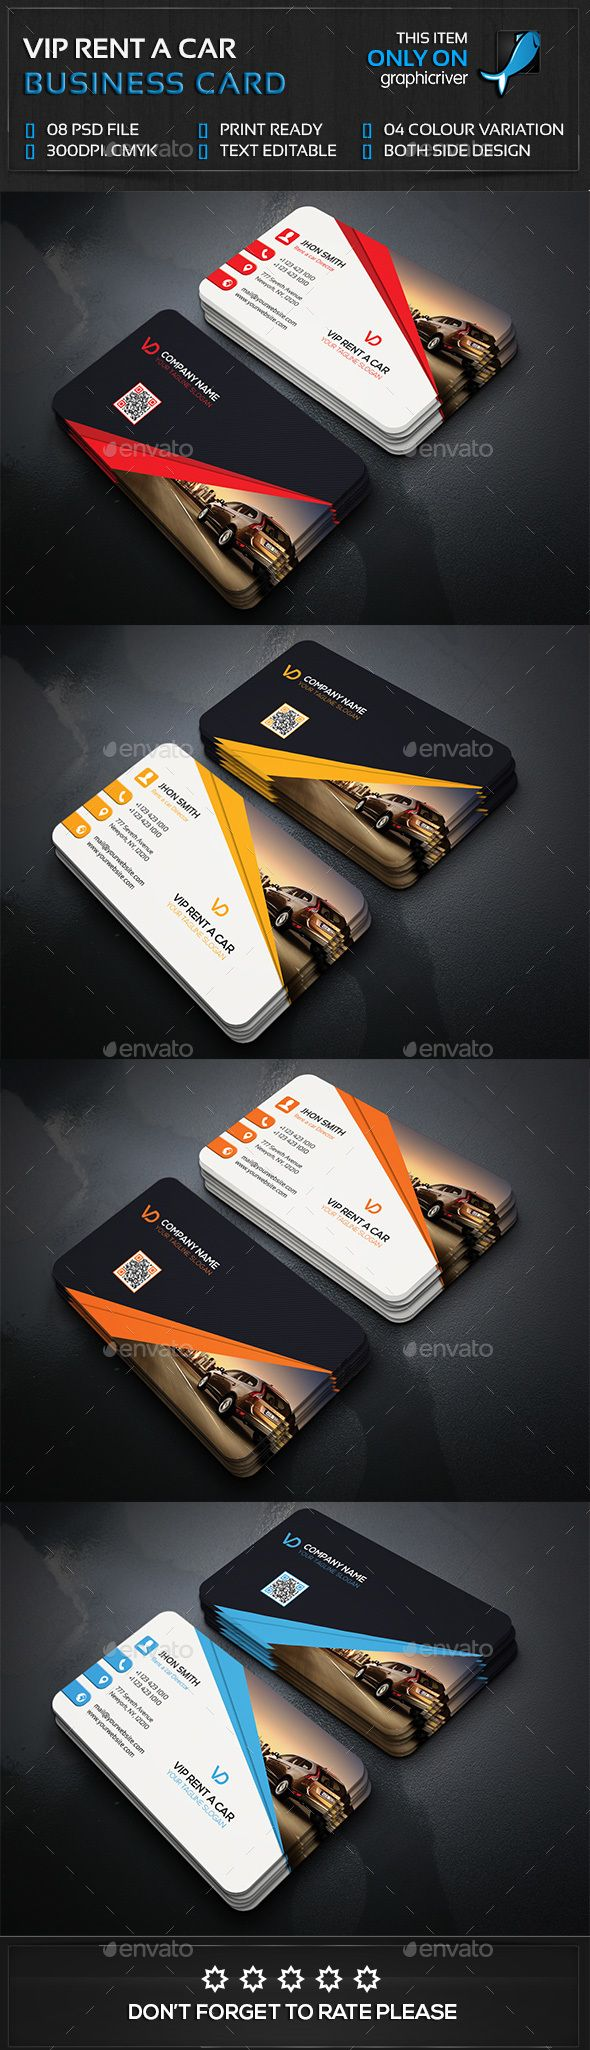 180 best graphics design images on pinterest business card